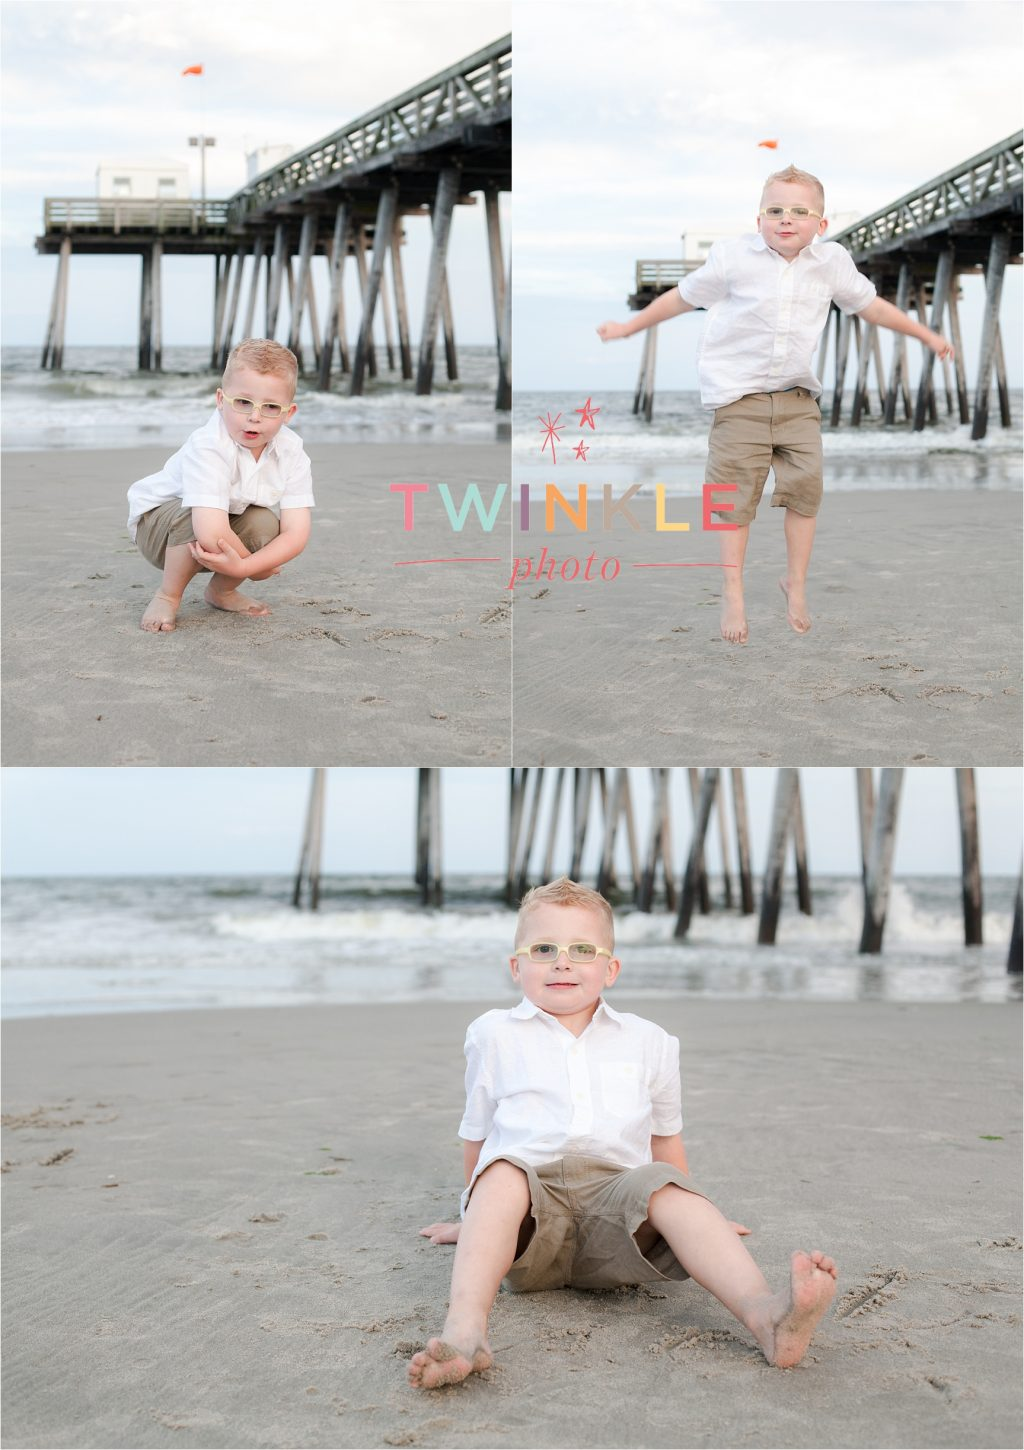 OCNJ Ocean City NJ New Jersey Beach Family Photography Photographer Twinkle Photo-15